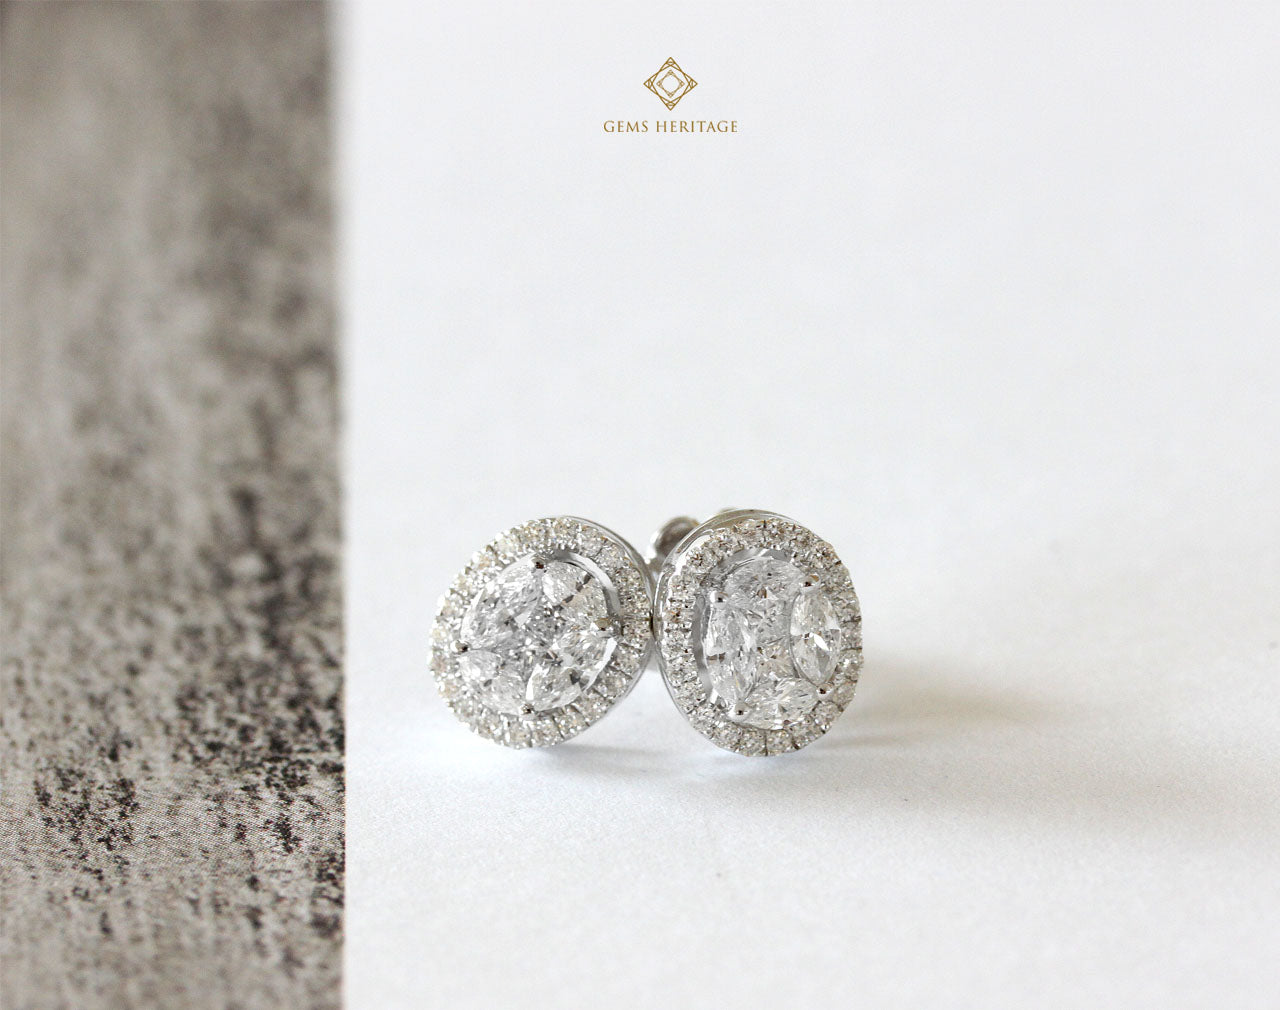 Oval illusion diamond earrings with halo